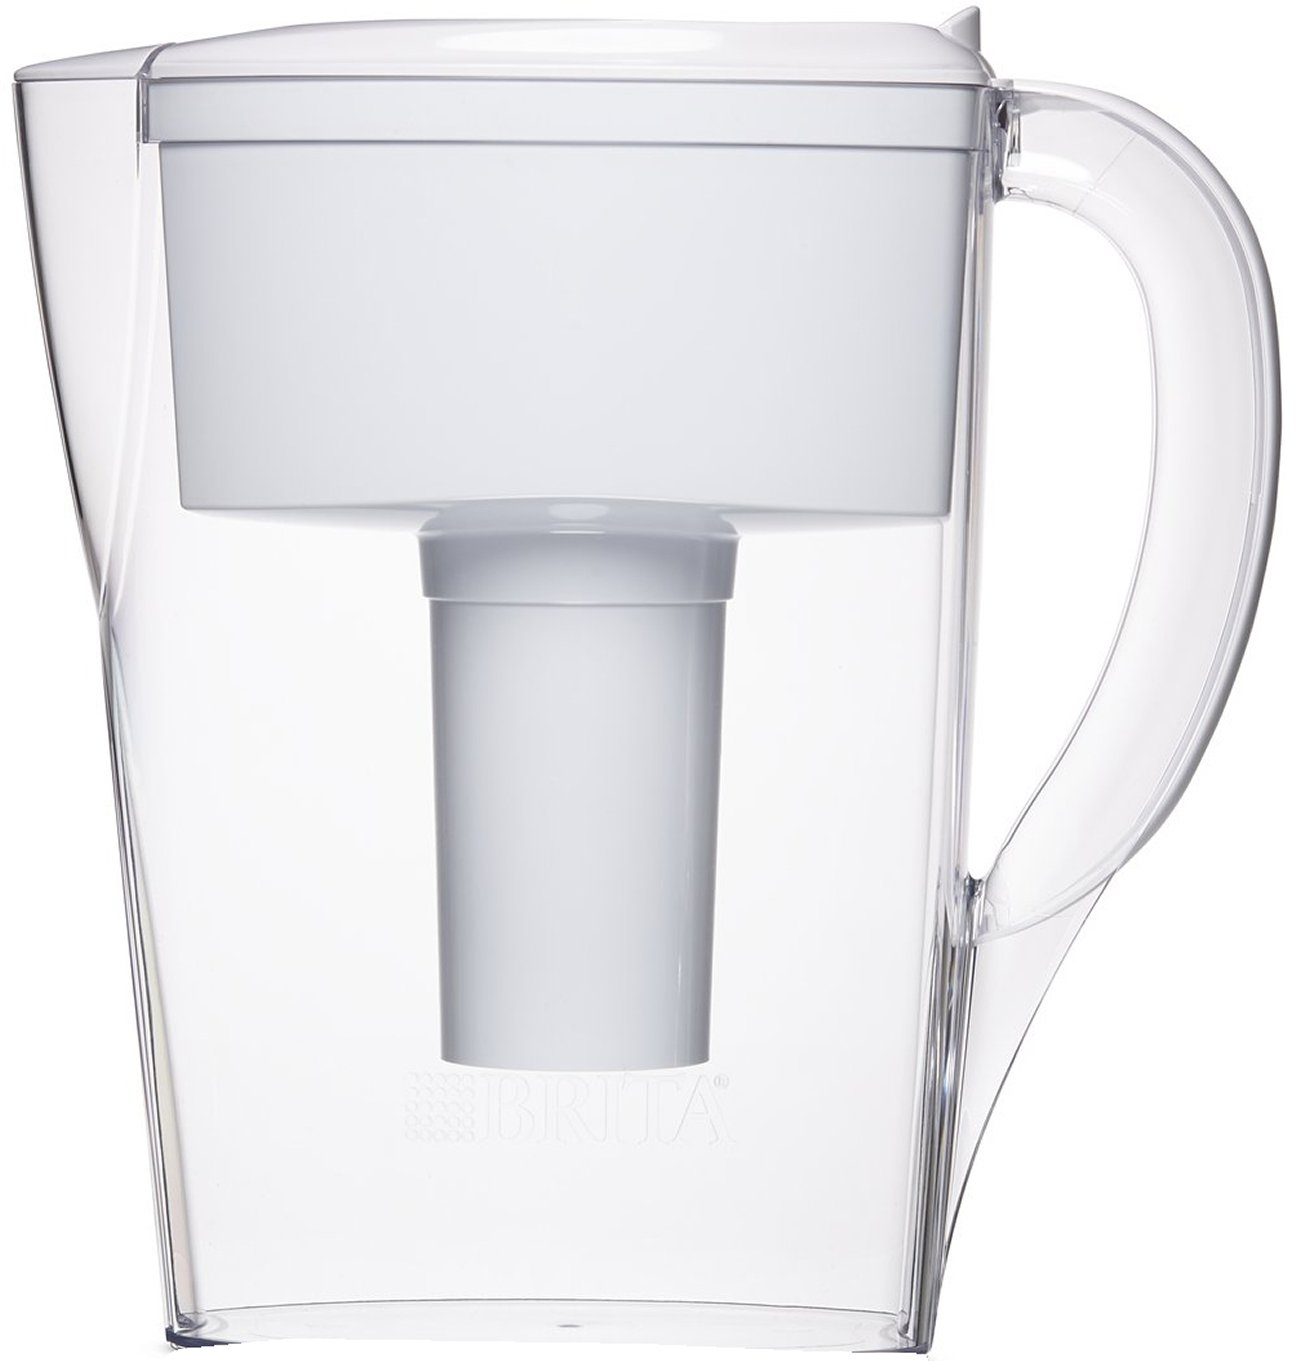 Brita 6 Cup Space Saver BPA Free Water Pitcher with 1 Filter, White